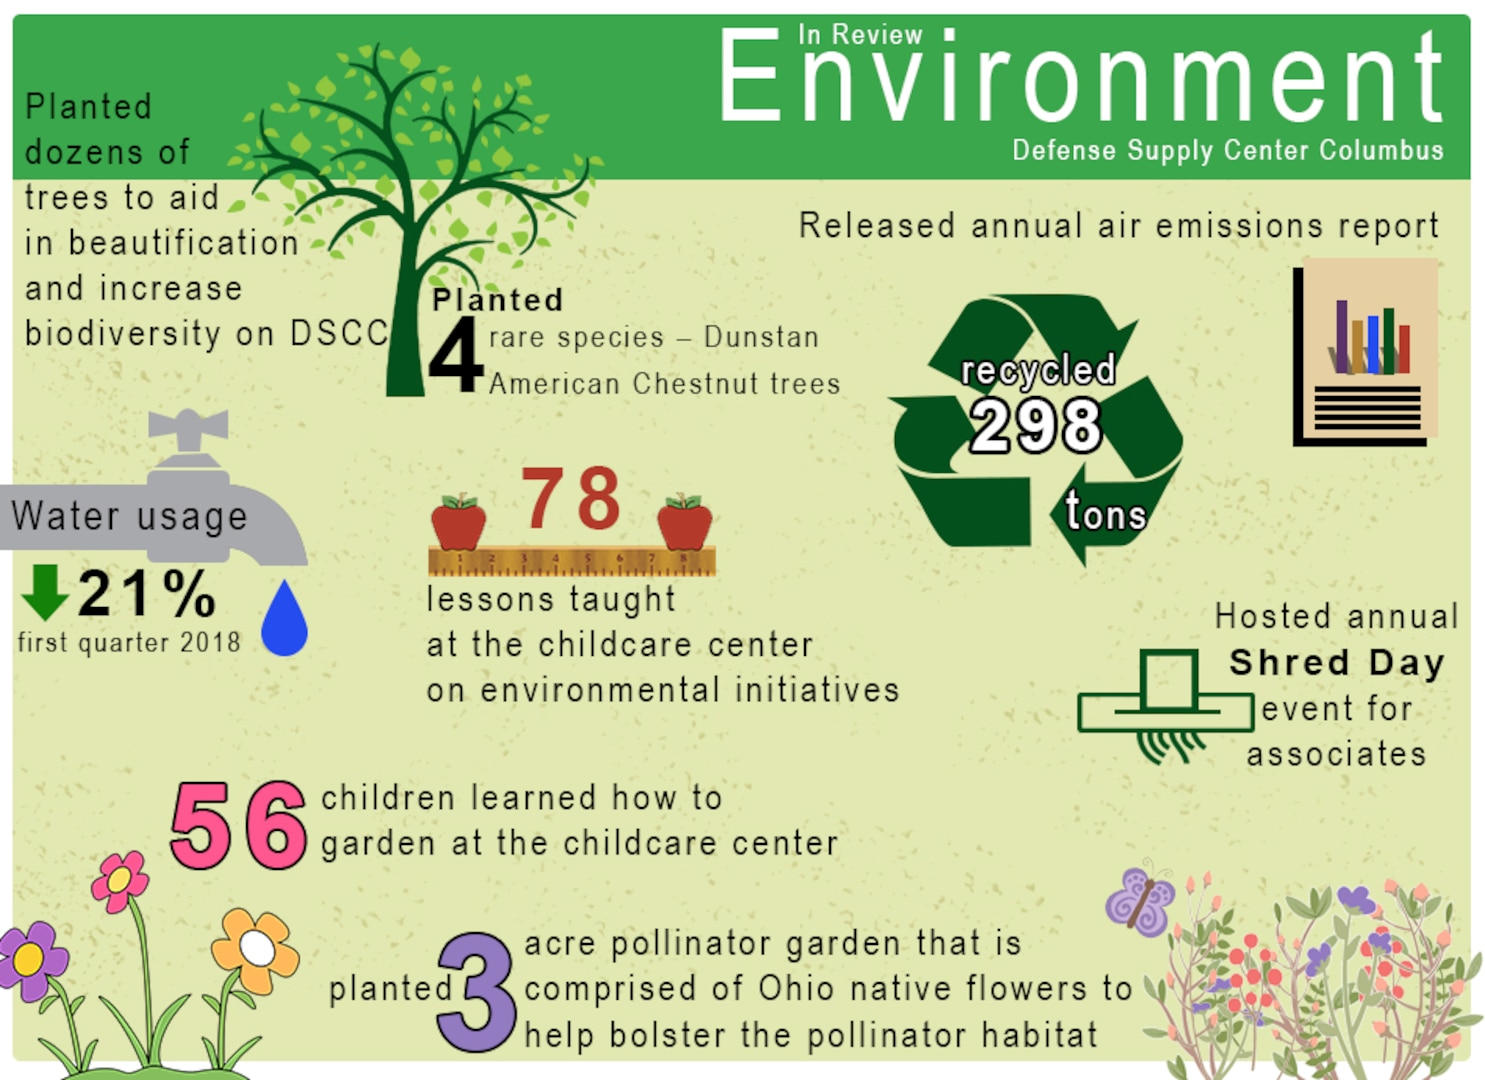 Environment In Review infographic